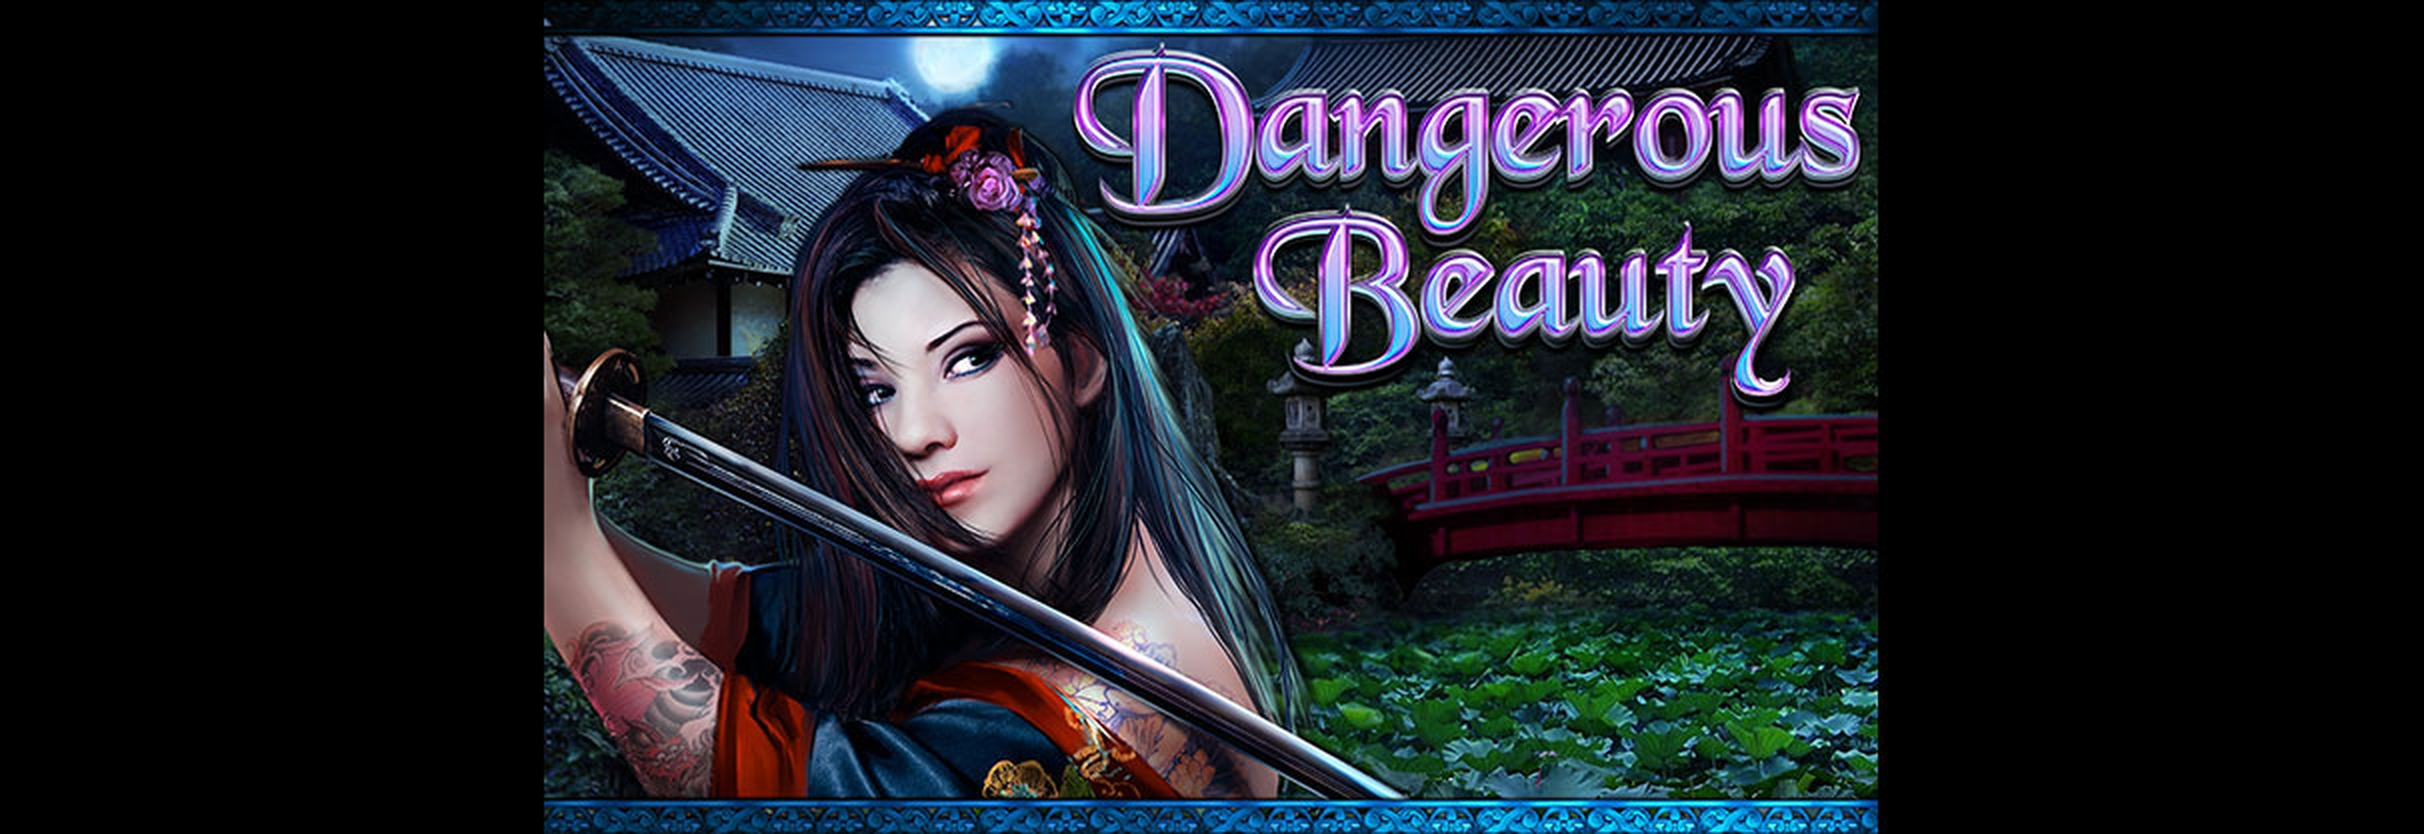 Dangerous Beauty Online Slot Demo Game by High5Games